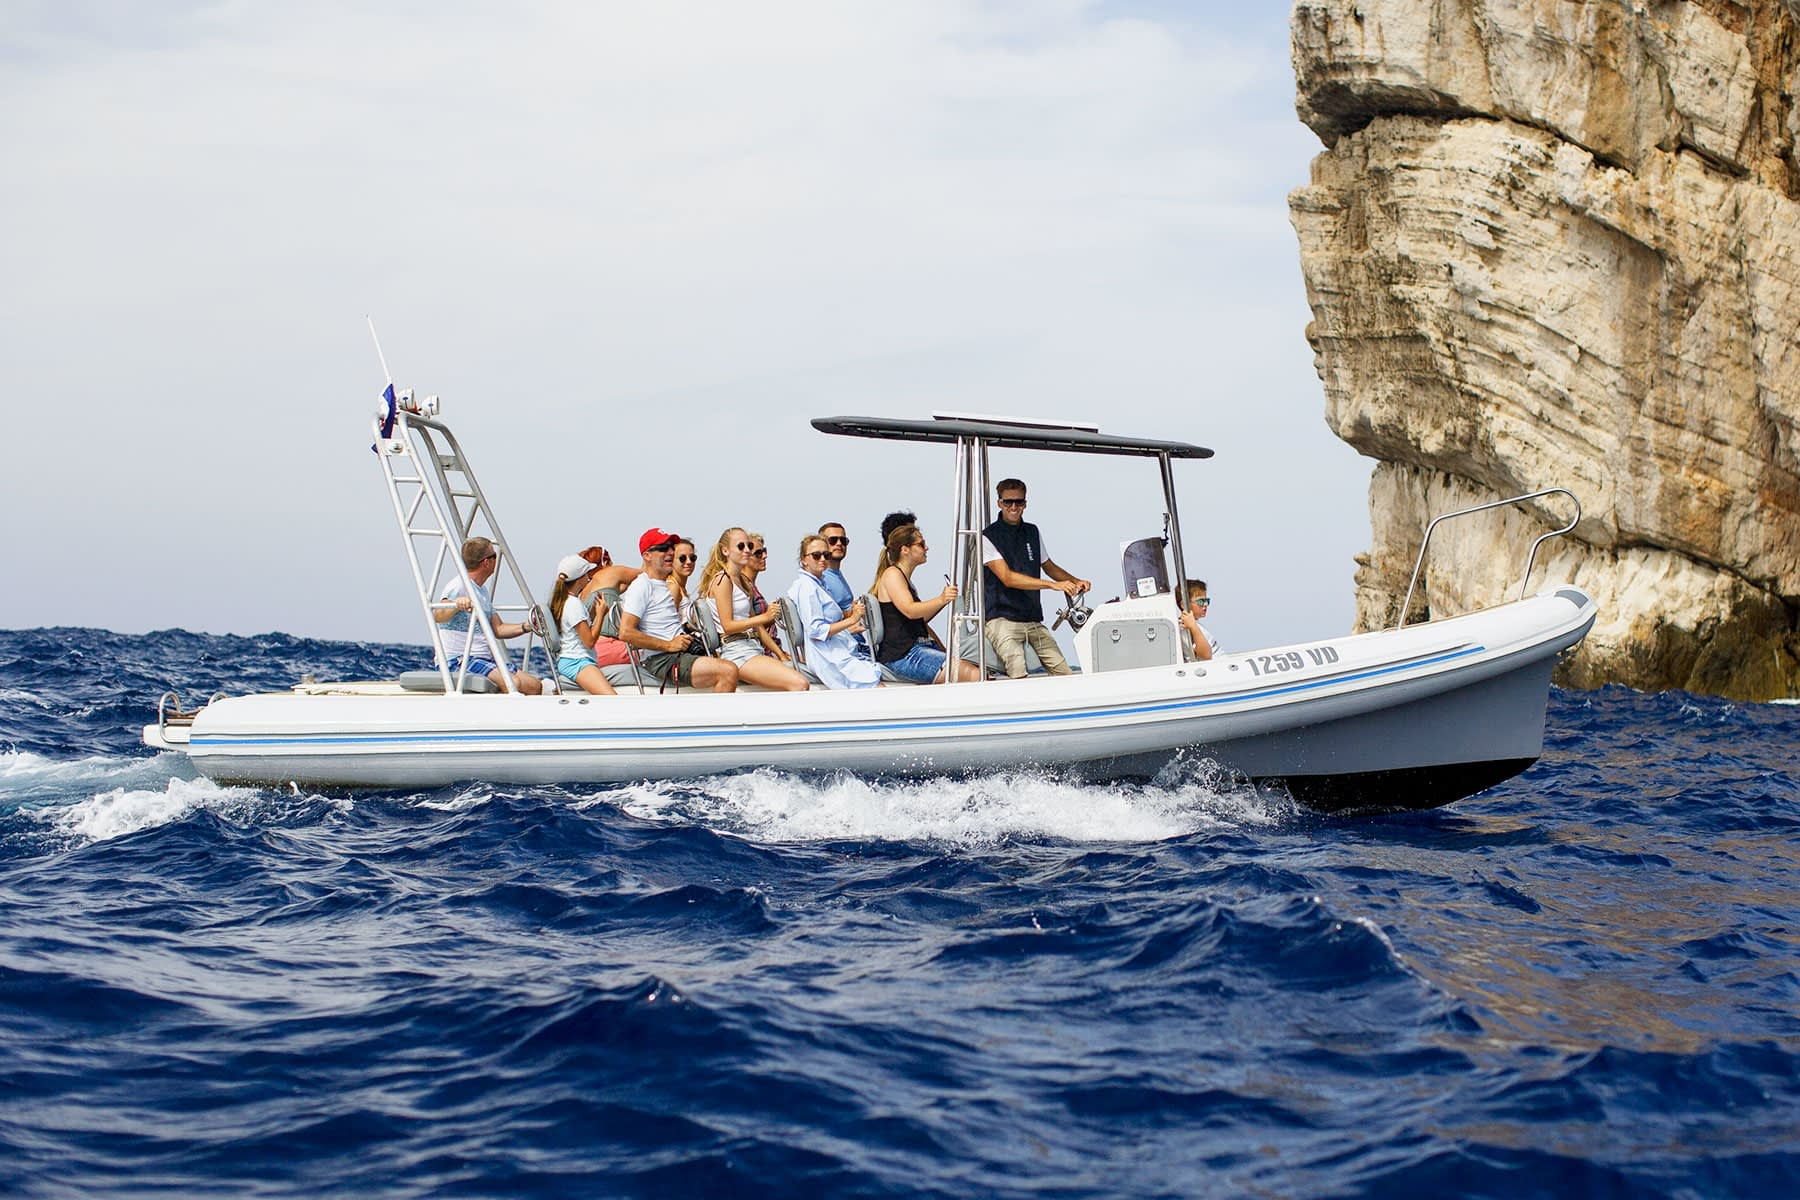 Archipelago Tours - Colnago boat photo taken under the cliffs in Kornati national Park